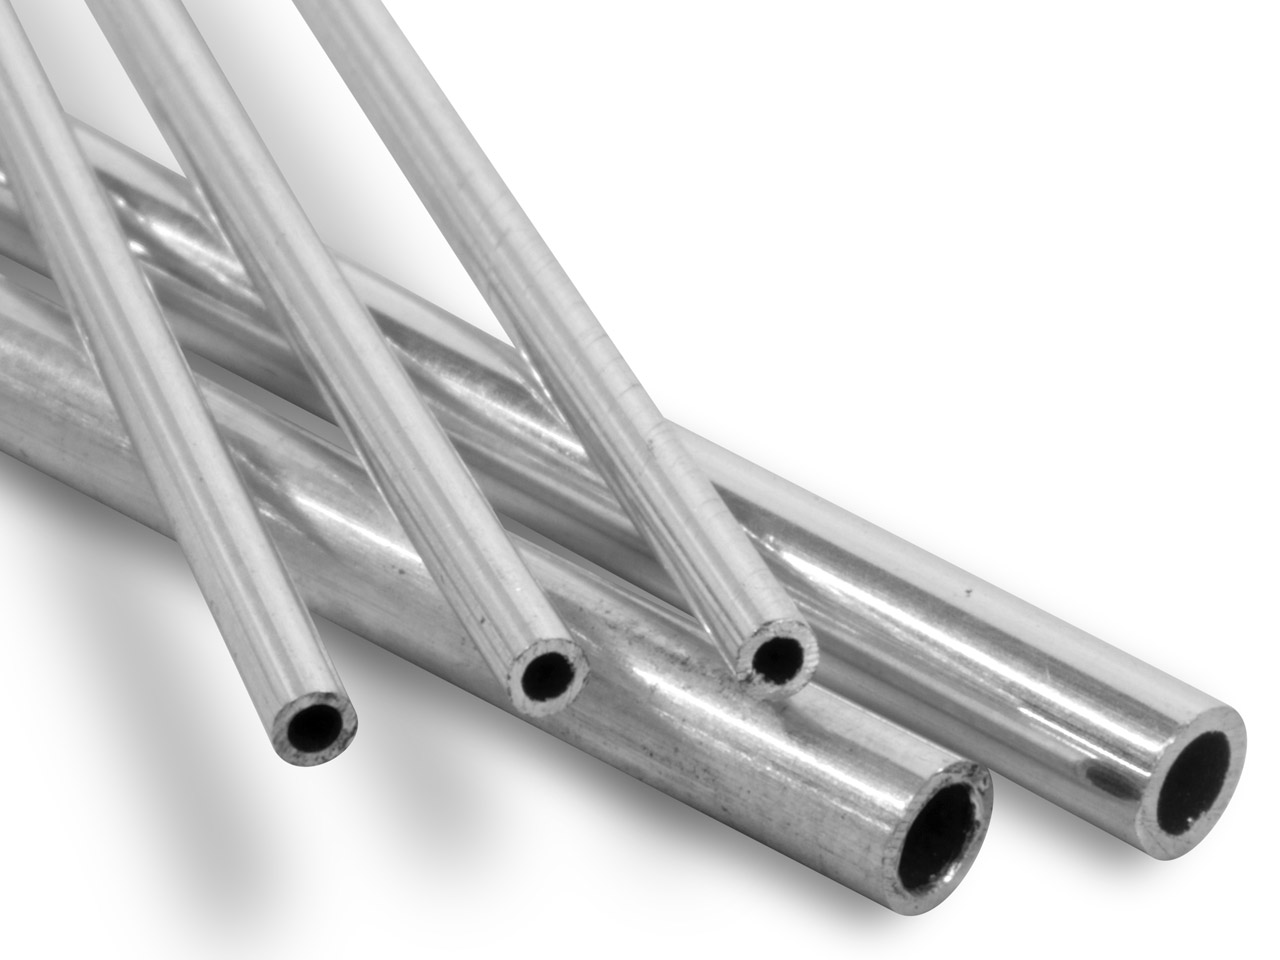 Sterling Silver Tube, Ref 5,       Outside Diameter 3.0mm,            Inside Diameter 2.1mm, 0.45mm Wall Thickness